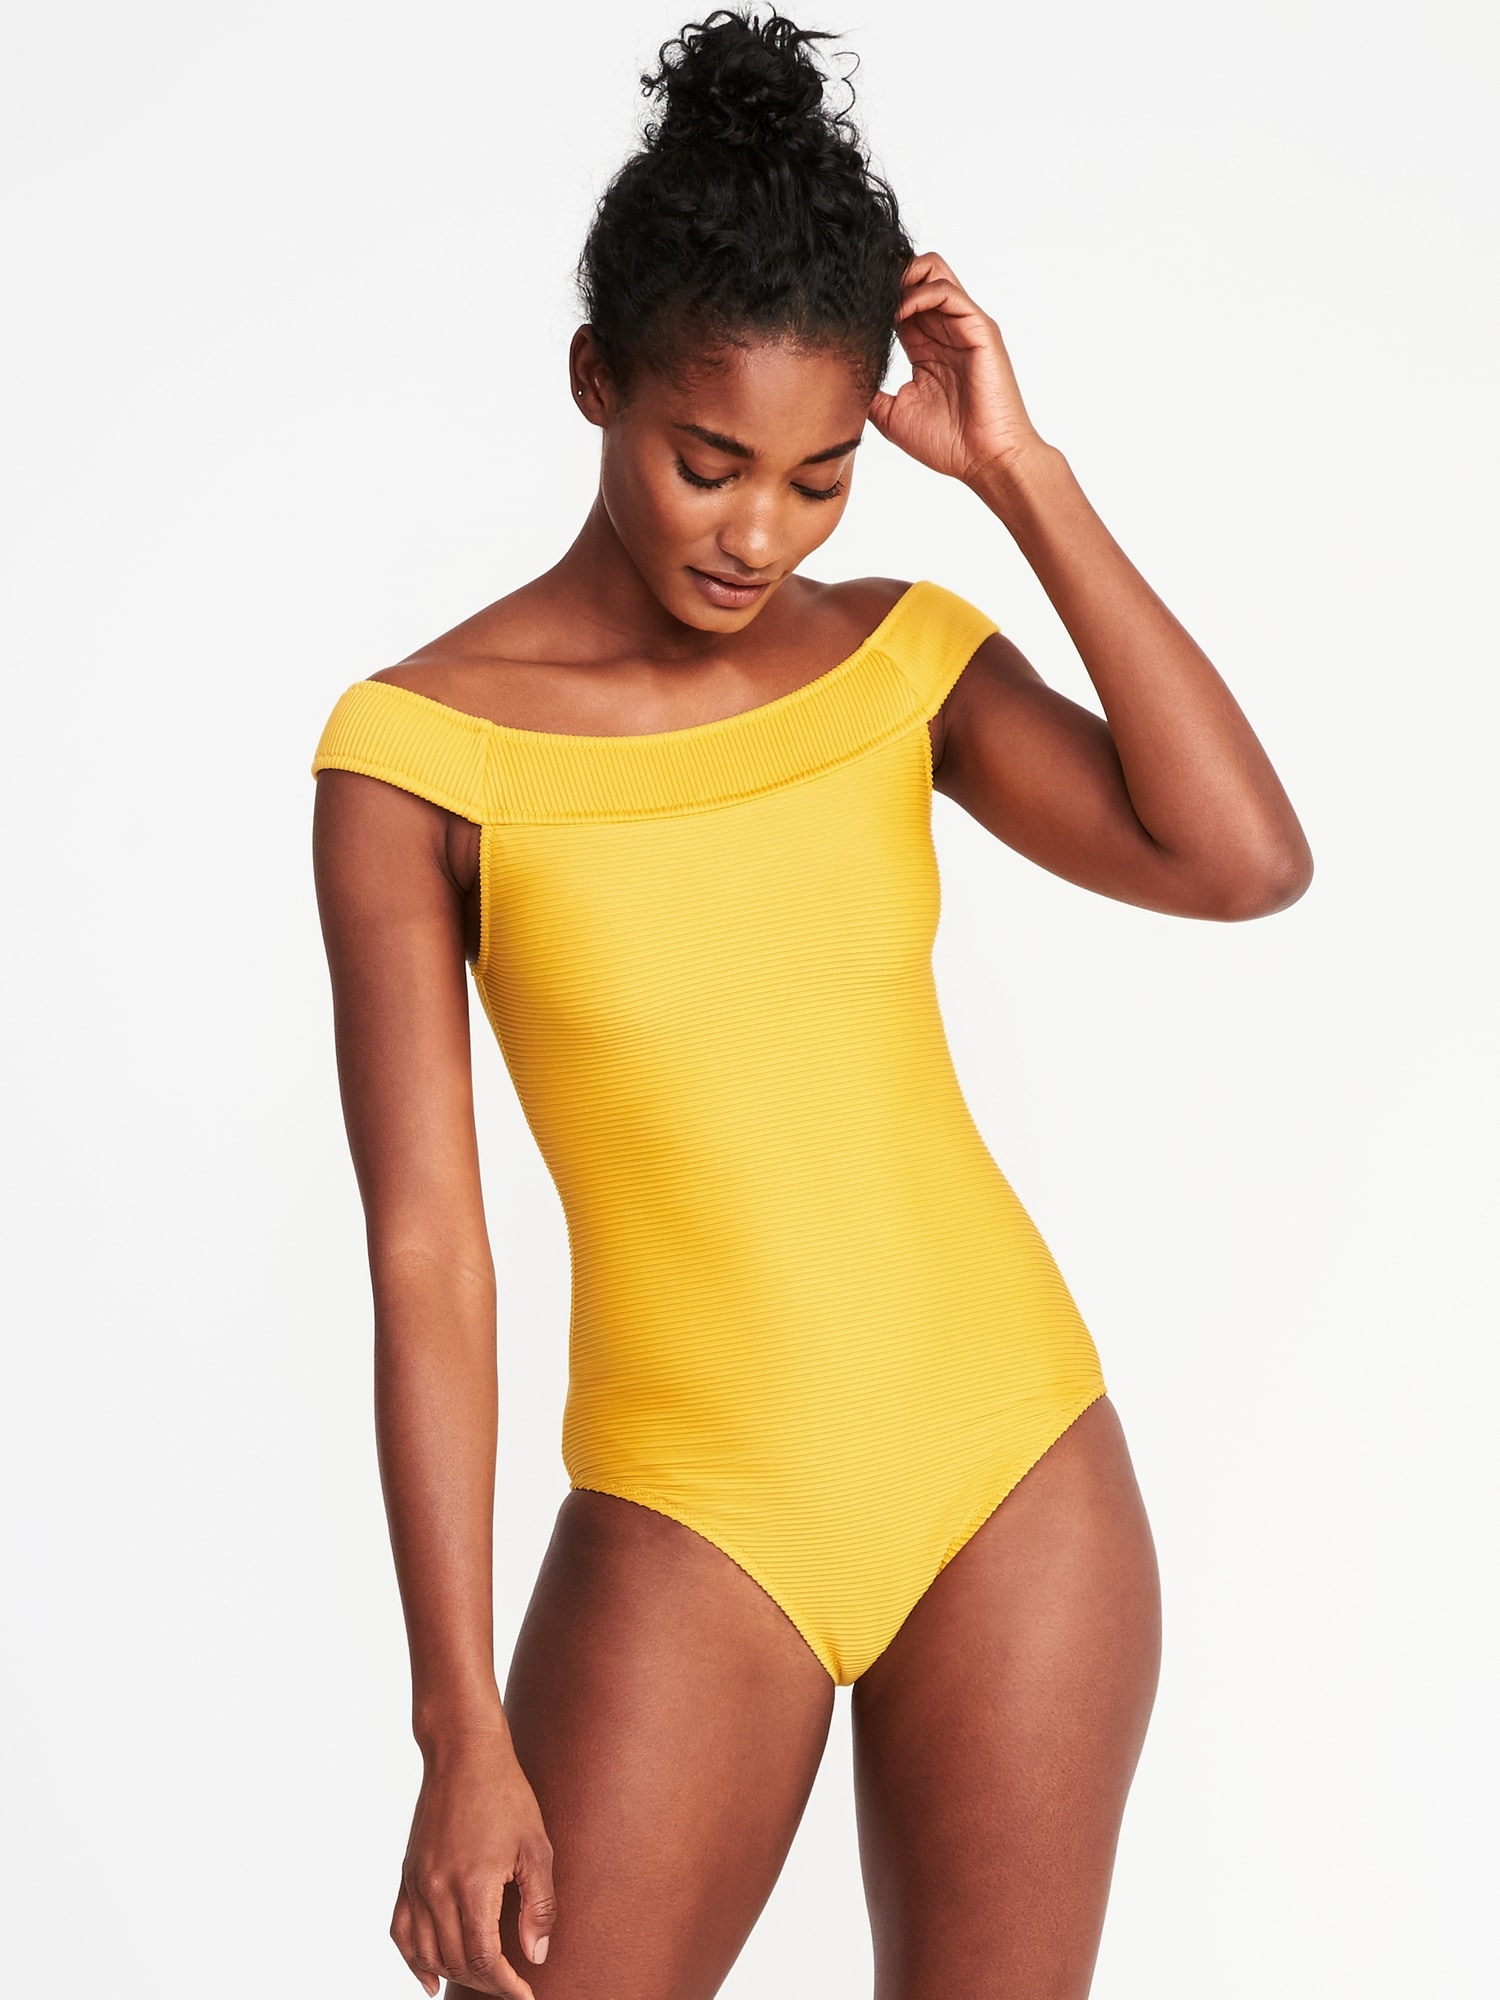 2336c421bdd938 Textured Off-the-Shoulder Swimsuit for Women | Old Navy